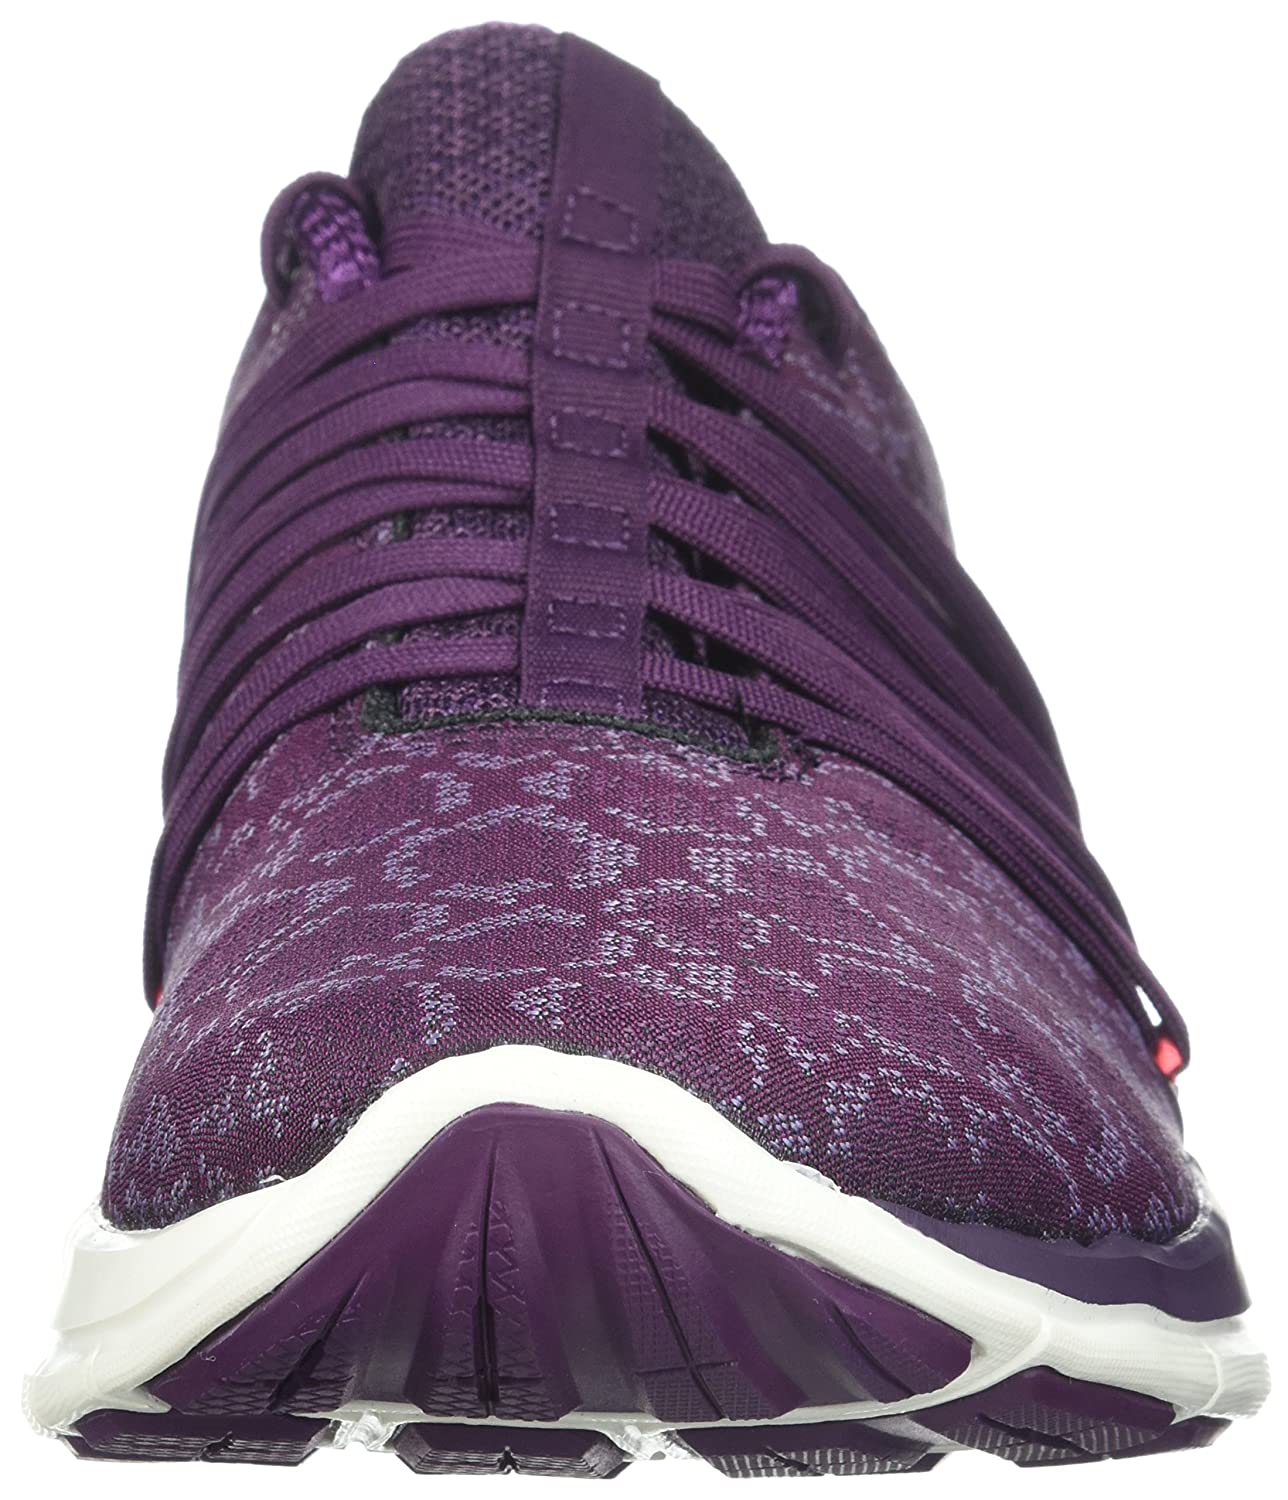 Under Armour Women's Charged Transit Running Shoe B072J3RS6Z 8.5 M US|Merlot (501)/Ivory